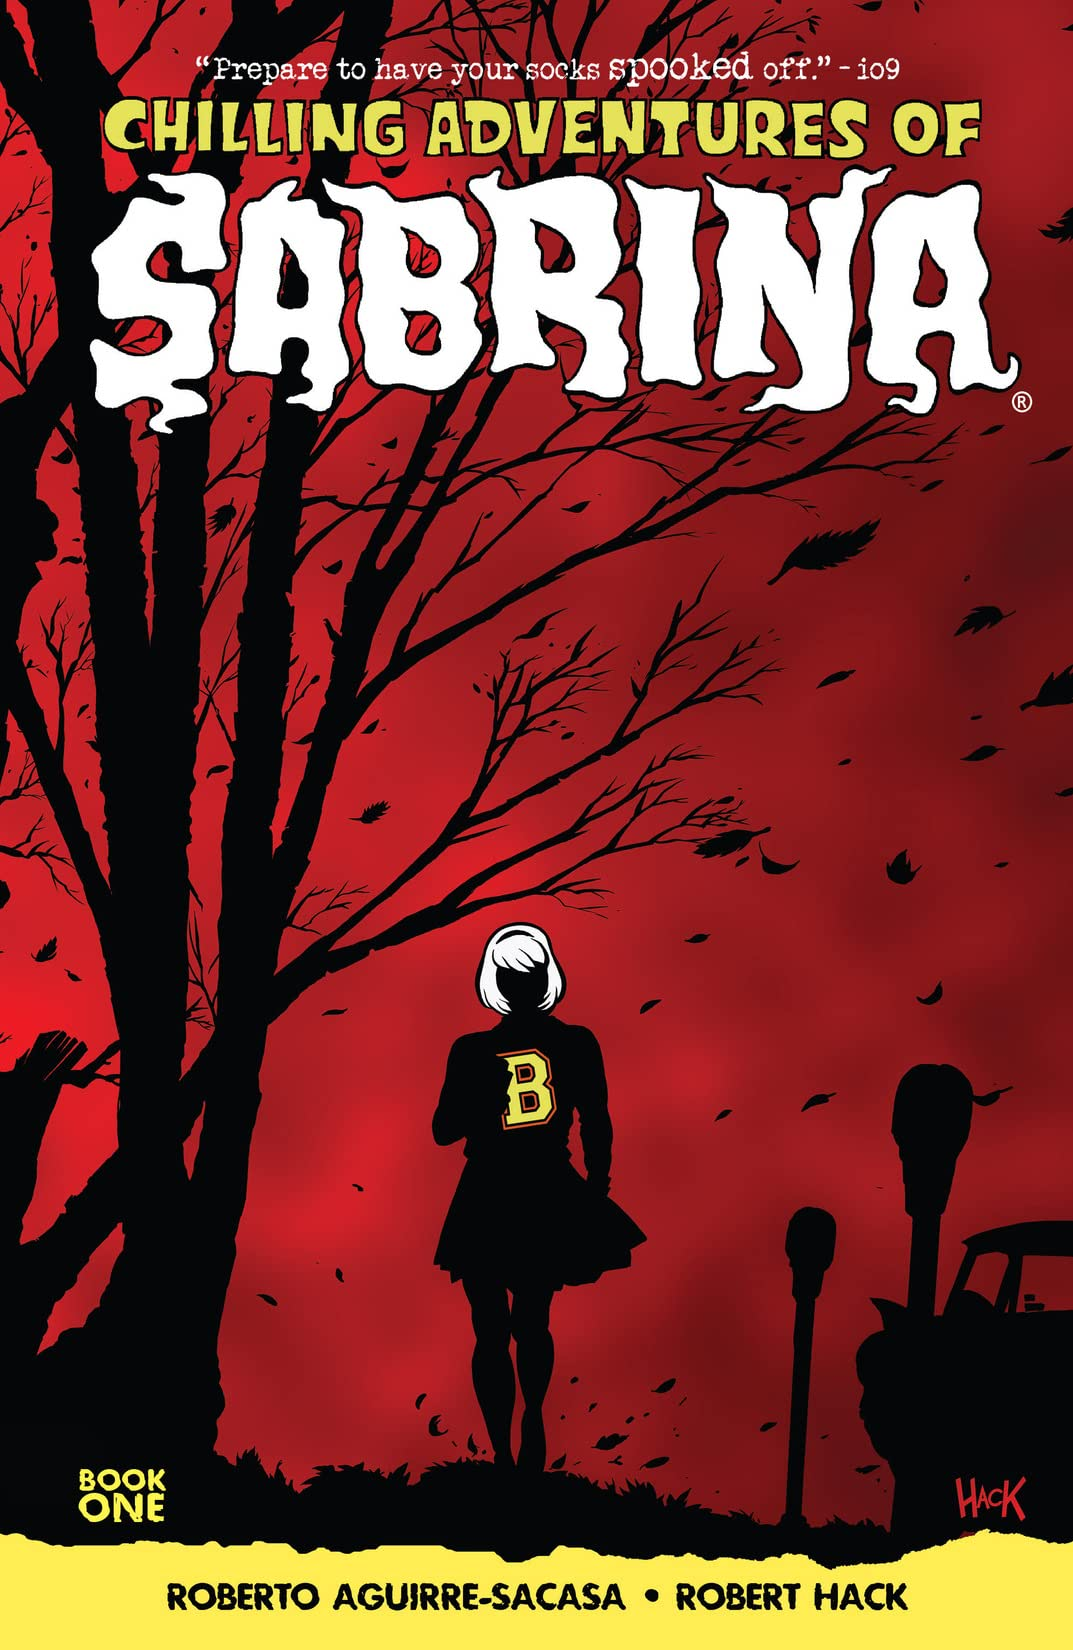 Chilling Adventures of Sabrina Vol. 1